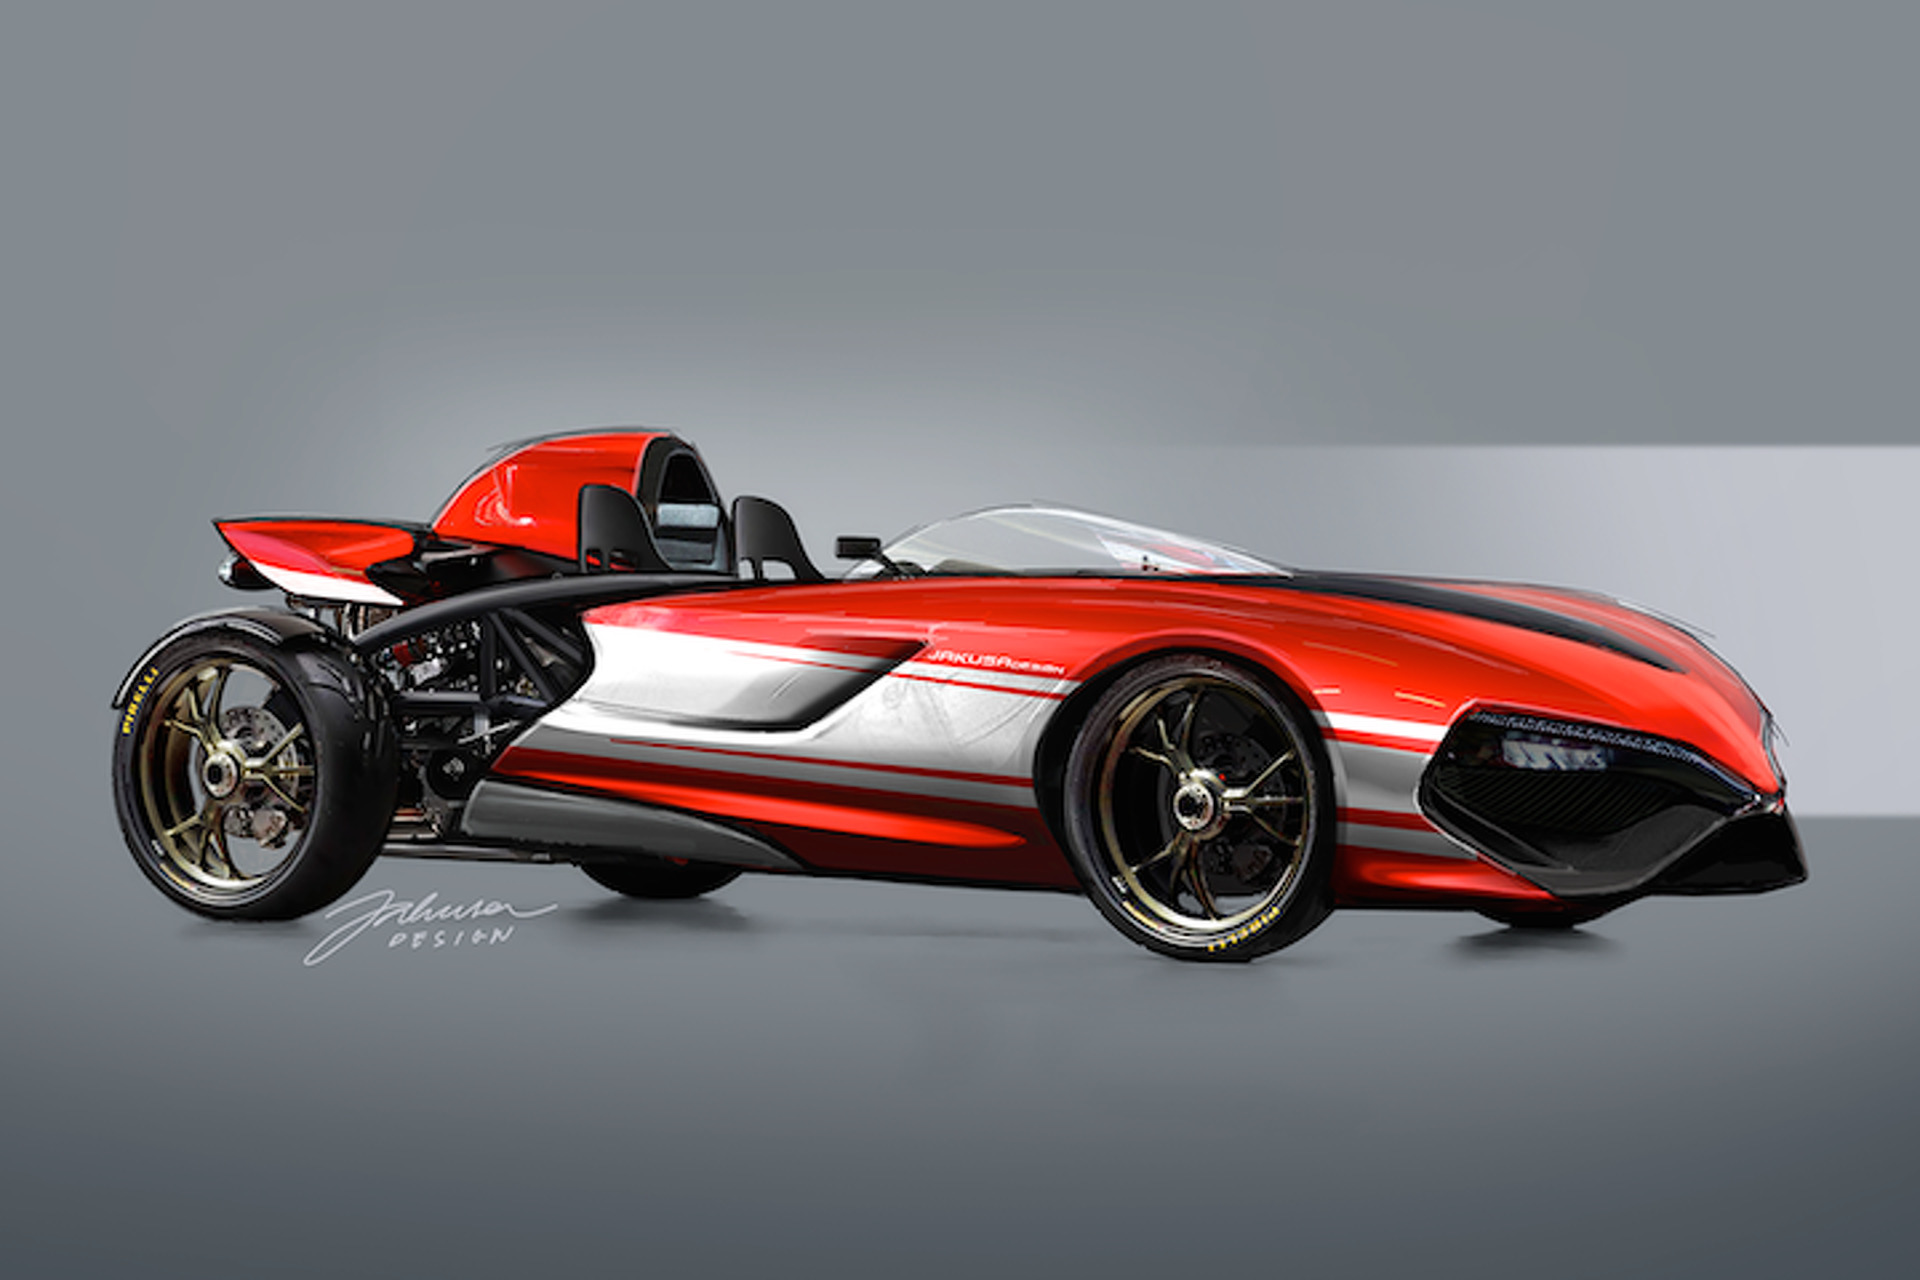 Ducati Powered Track Car Is Everything You Hoped It Would Be